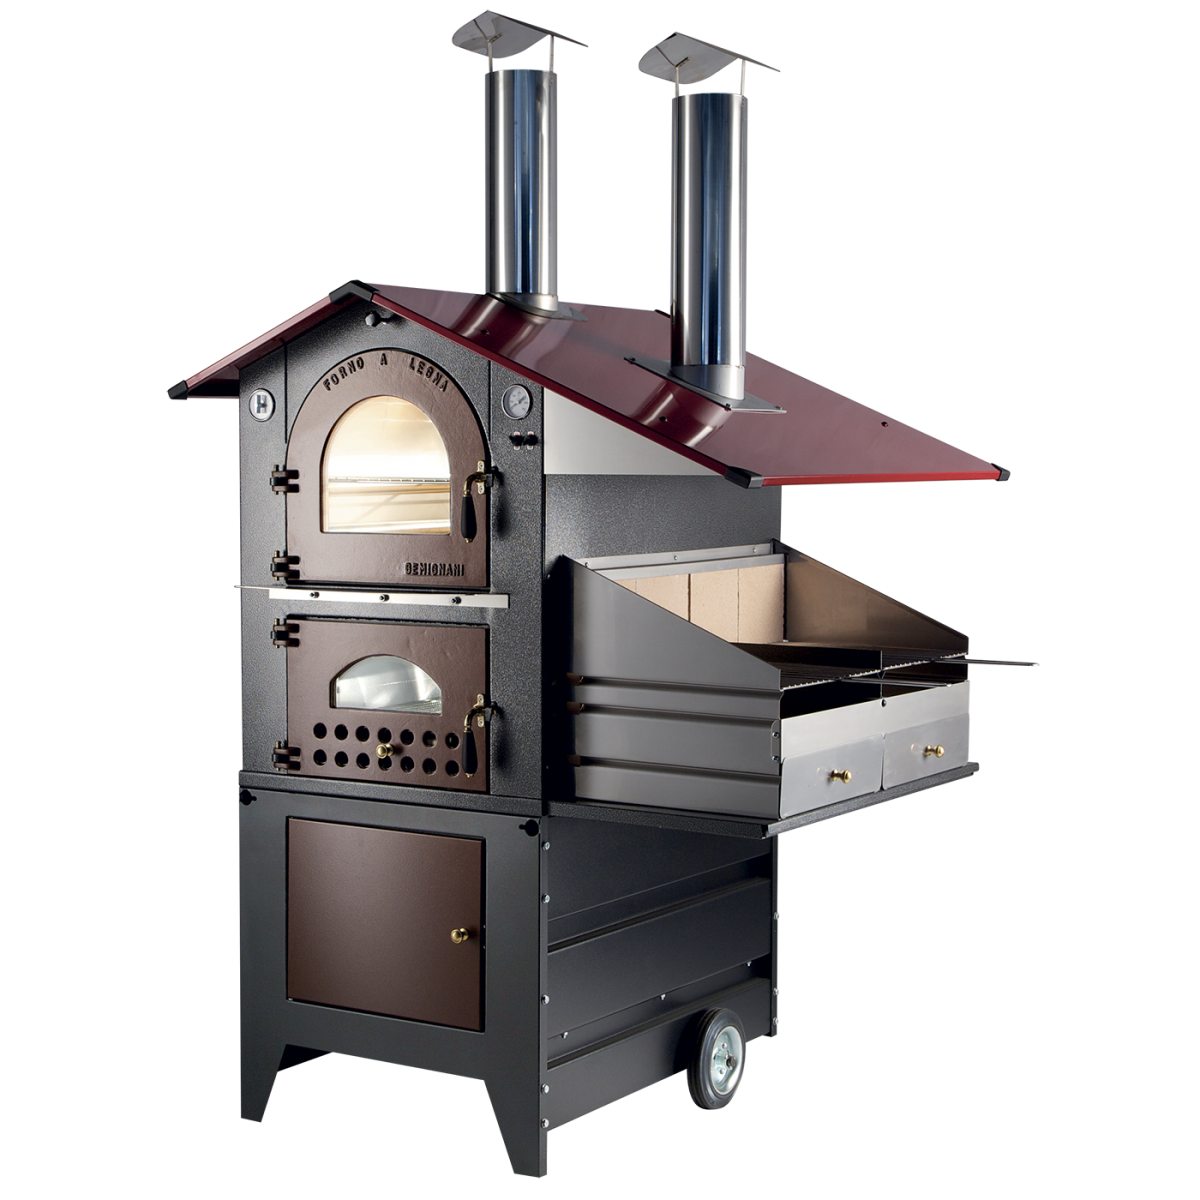 Wood Stove Outdoor Model G90 Barbecue